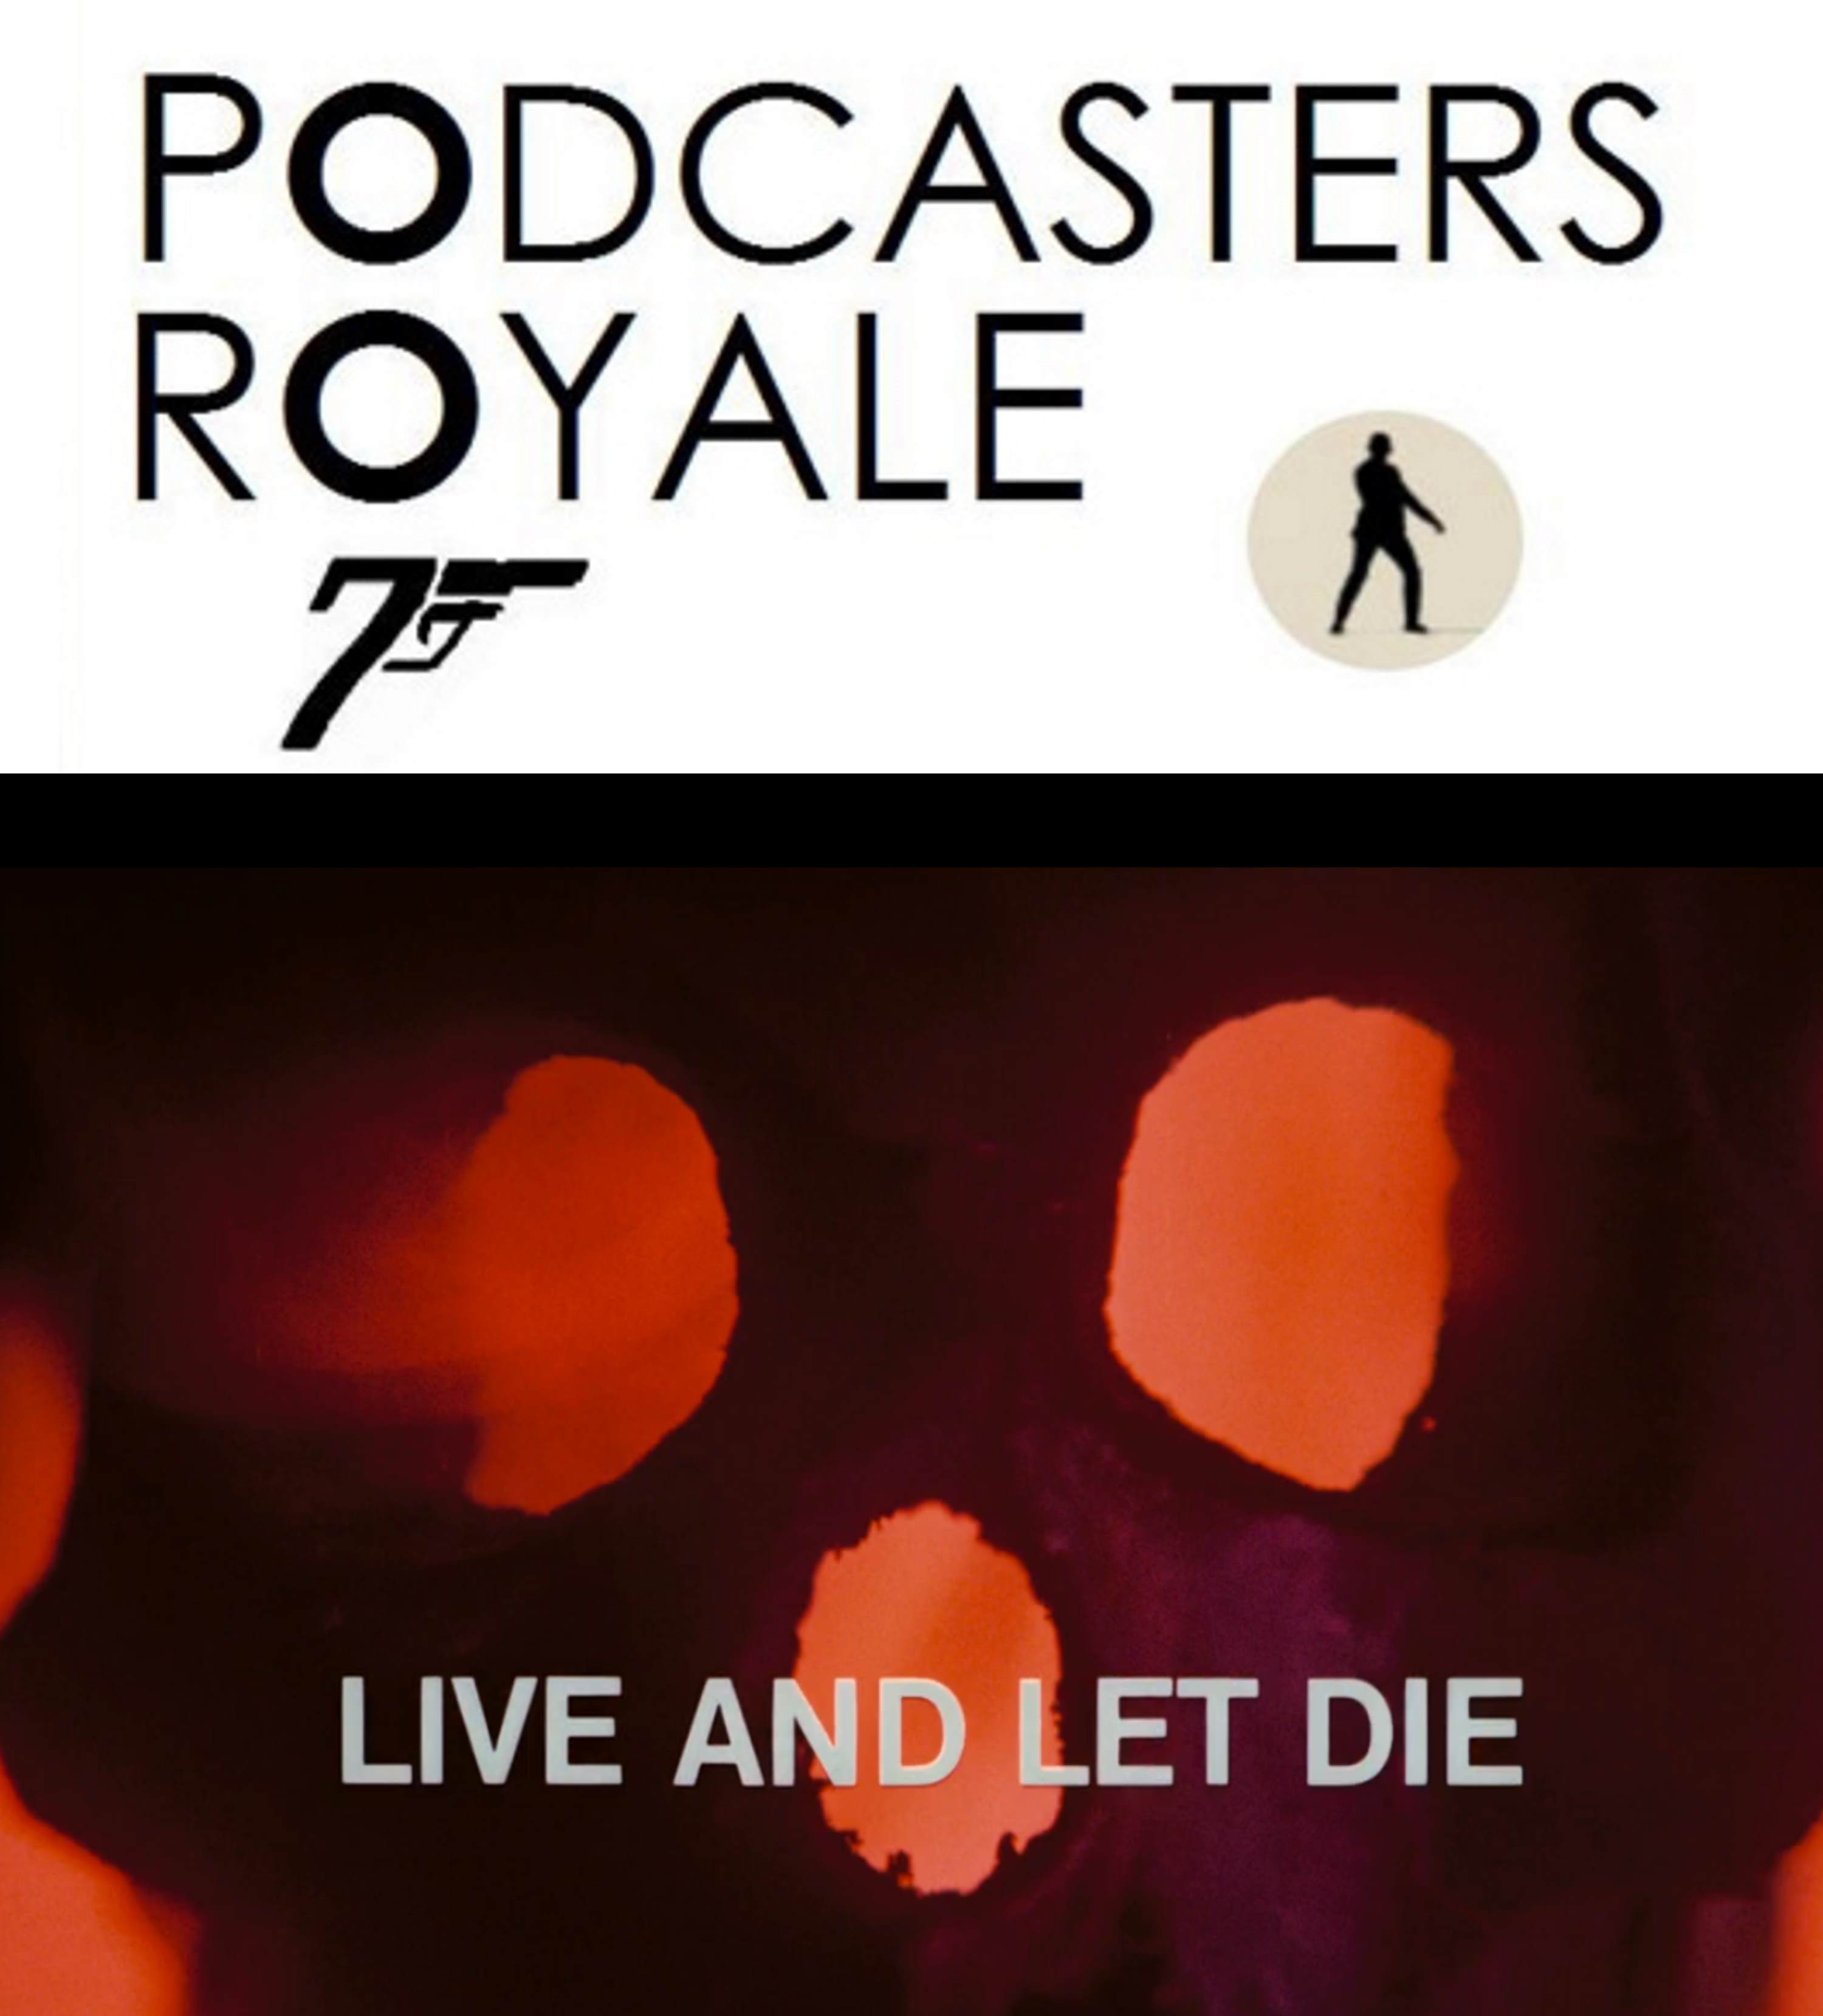 PODCASTERS ROYALE 26 - LIVE AND LET DIE